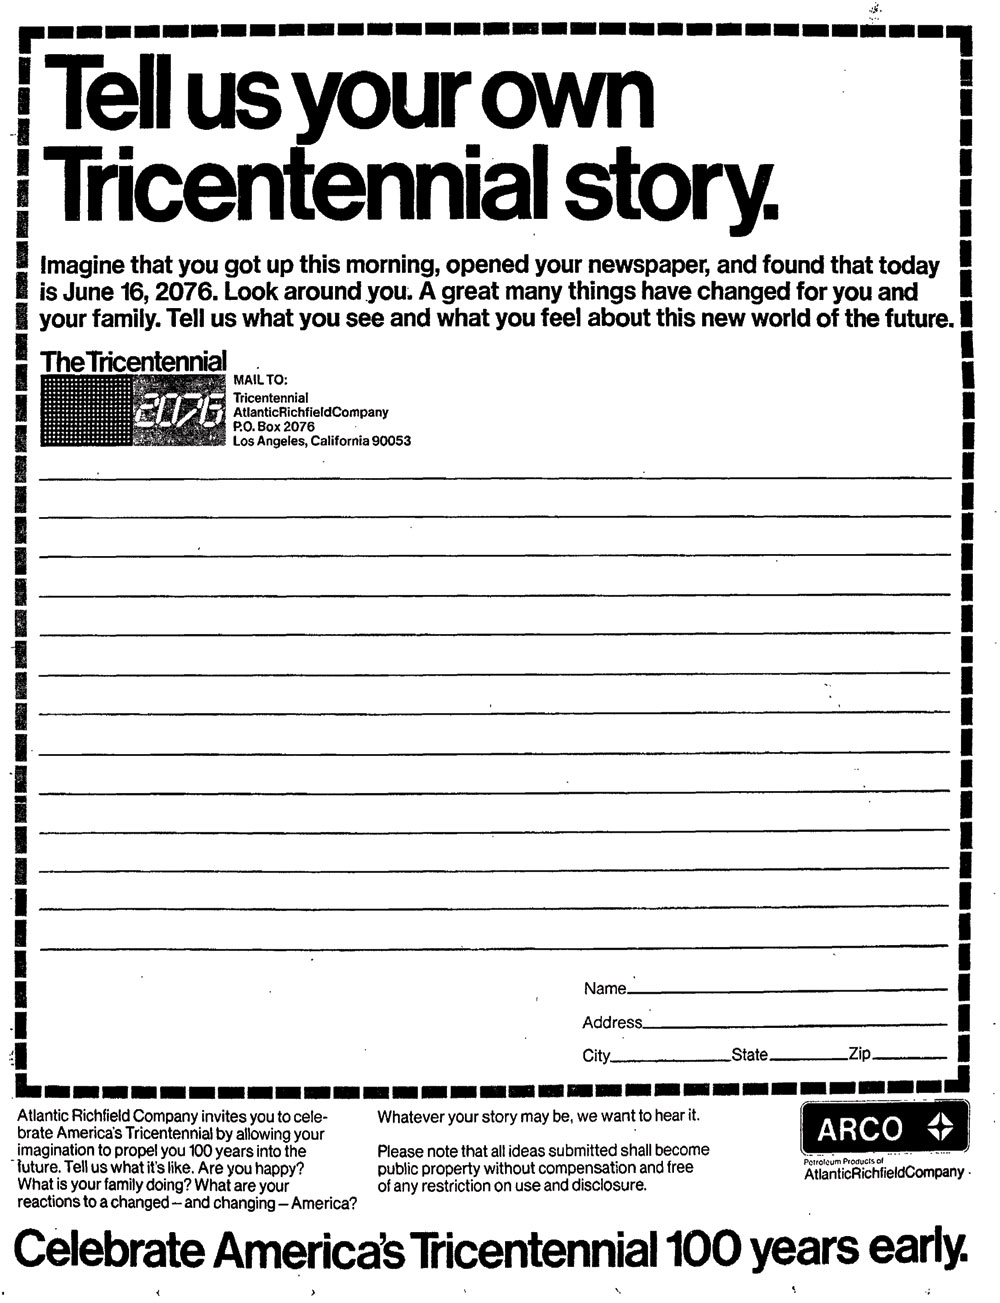 tricentennial The advertisement below appeared in the June 16, 1976 Oakland Tribune (Oakland, CA) and asked for submissions from the general public.